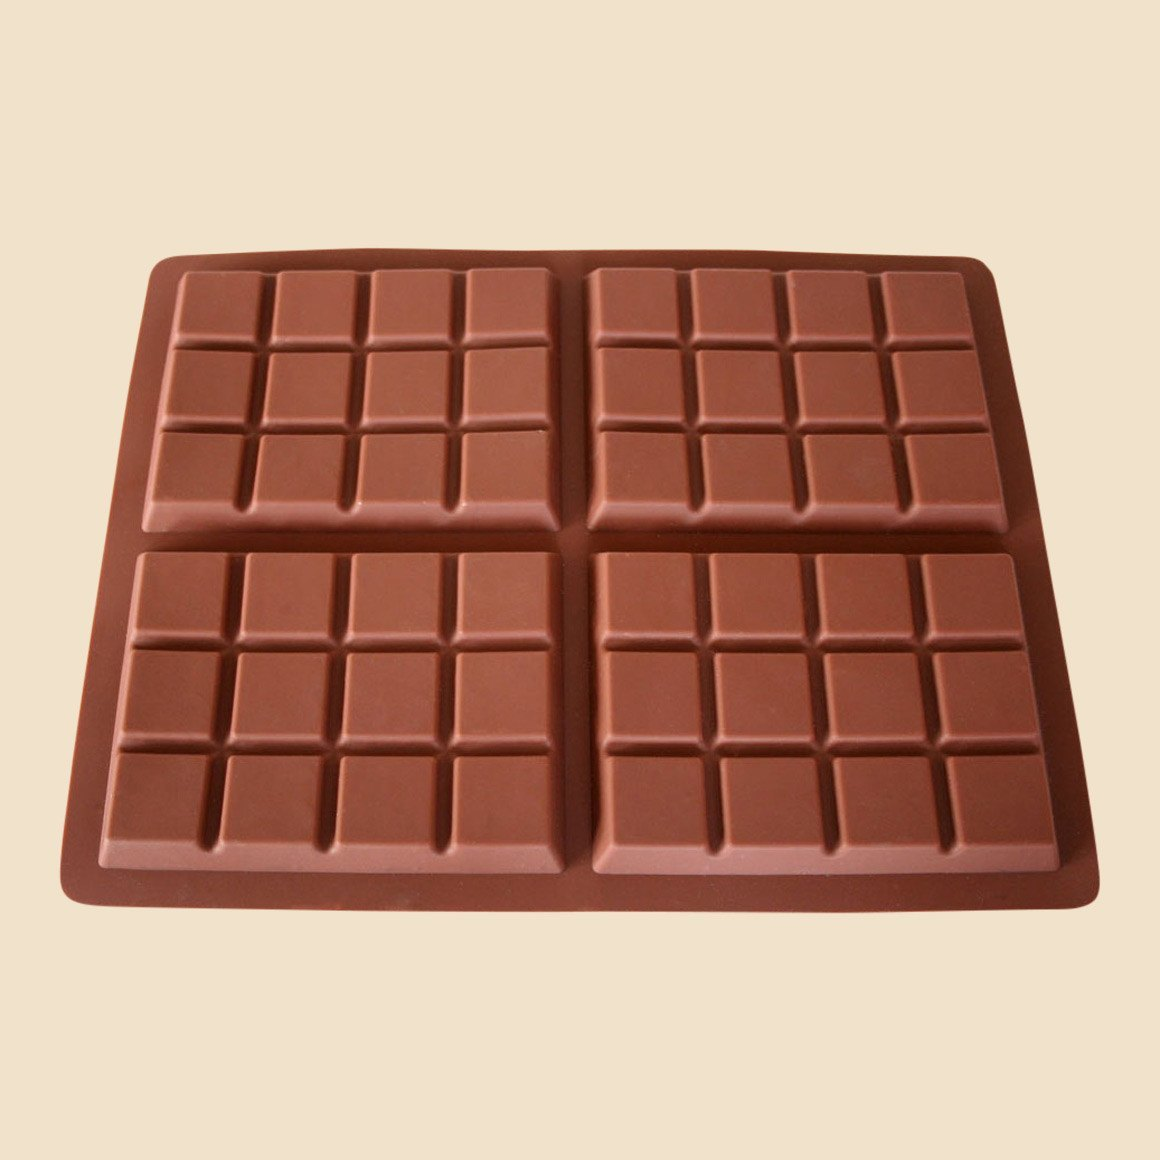 4 Bar Chocolate Mould